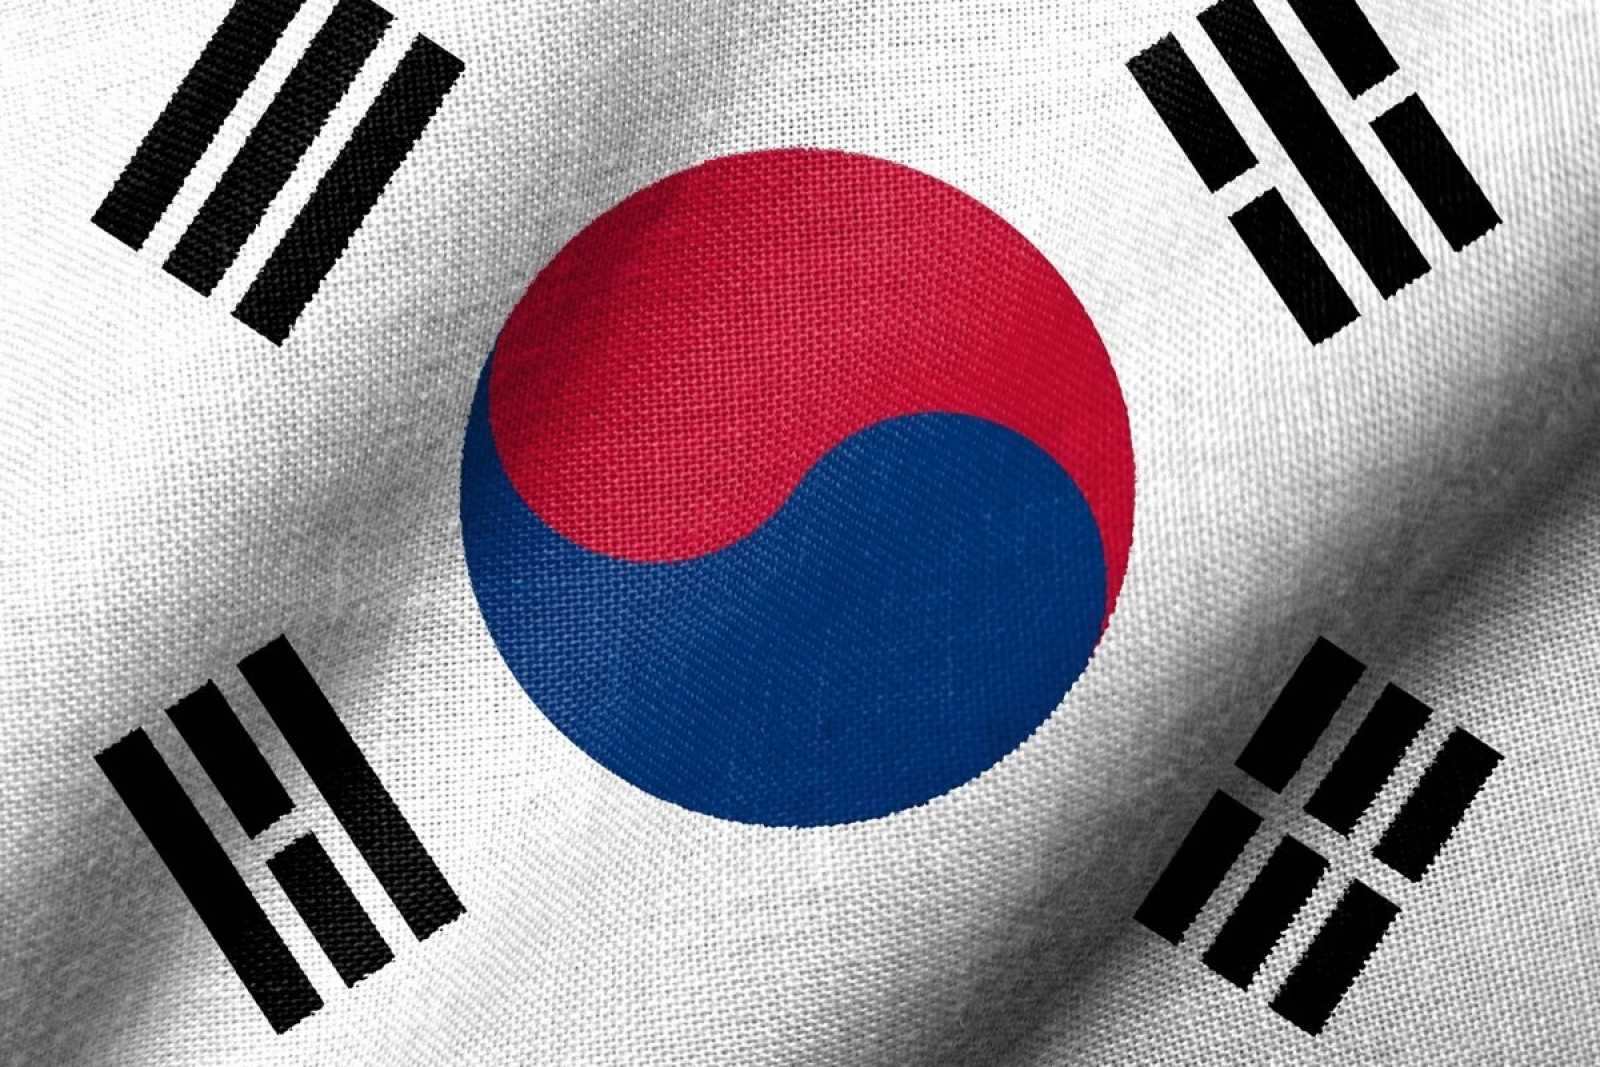 South korea 75ne6tf02